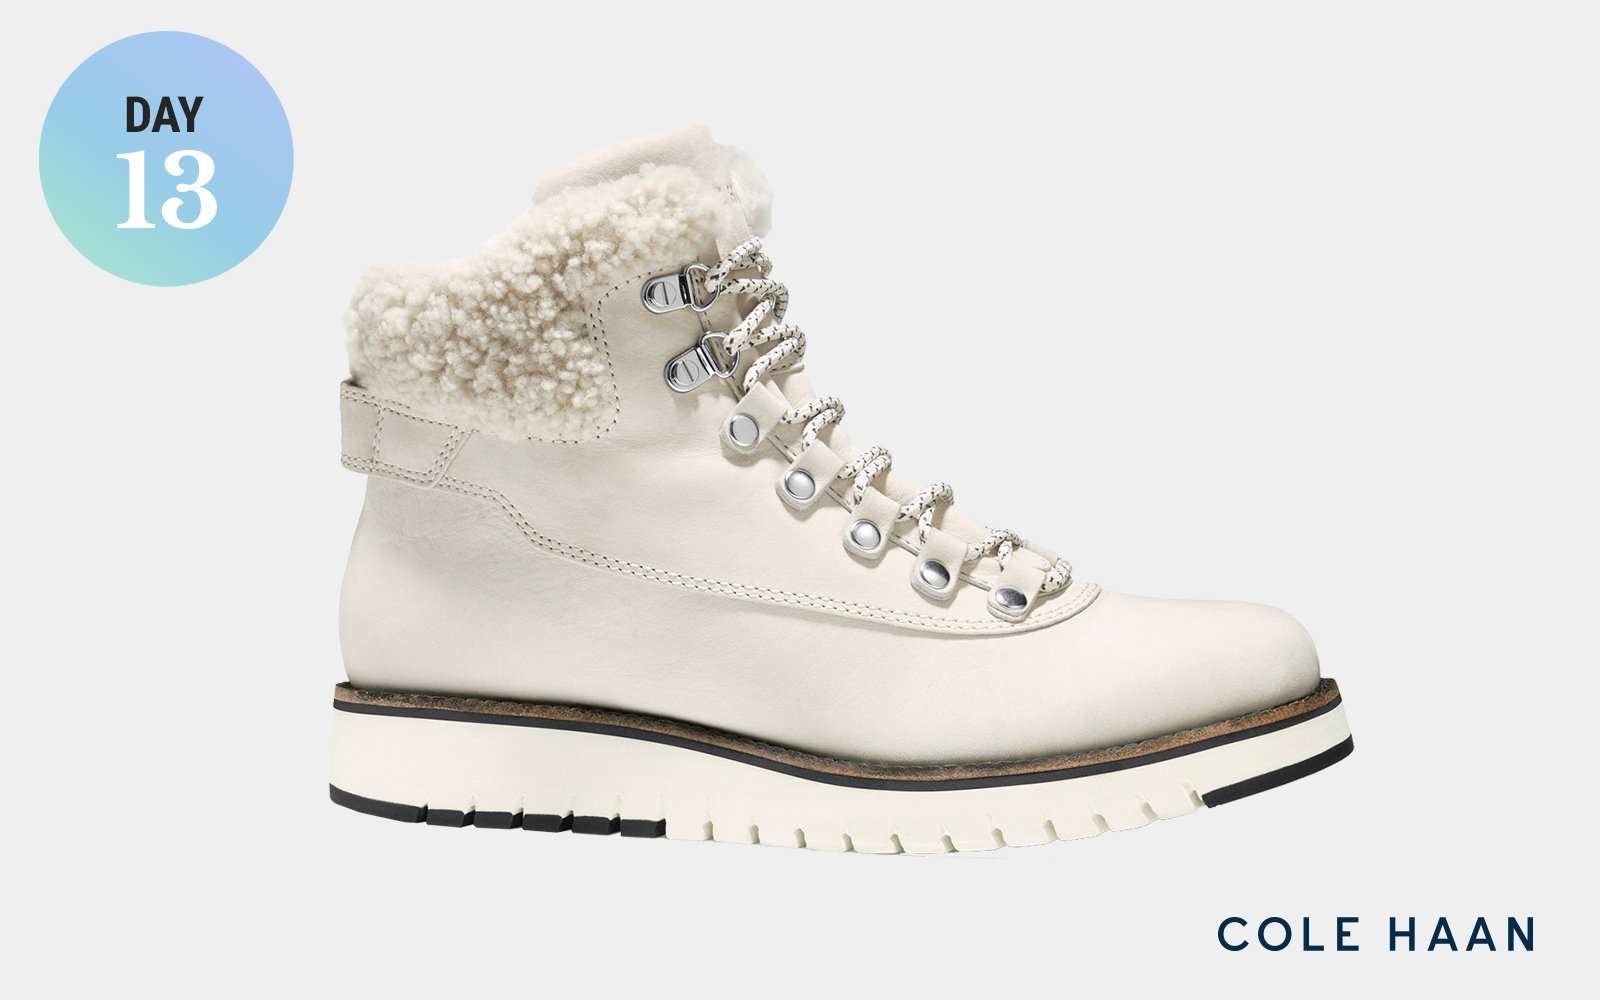 Cole Haan GrandExpløre Waterproof Hikers